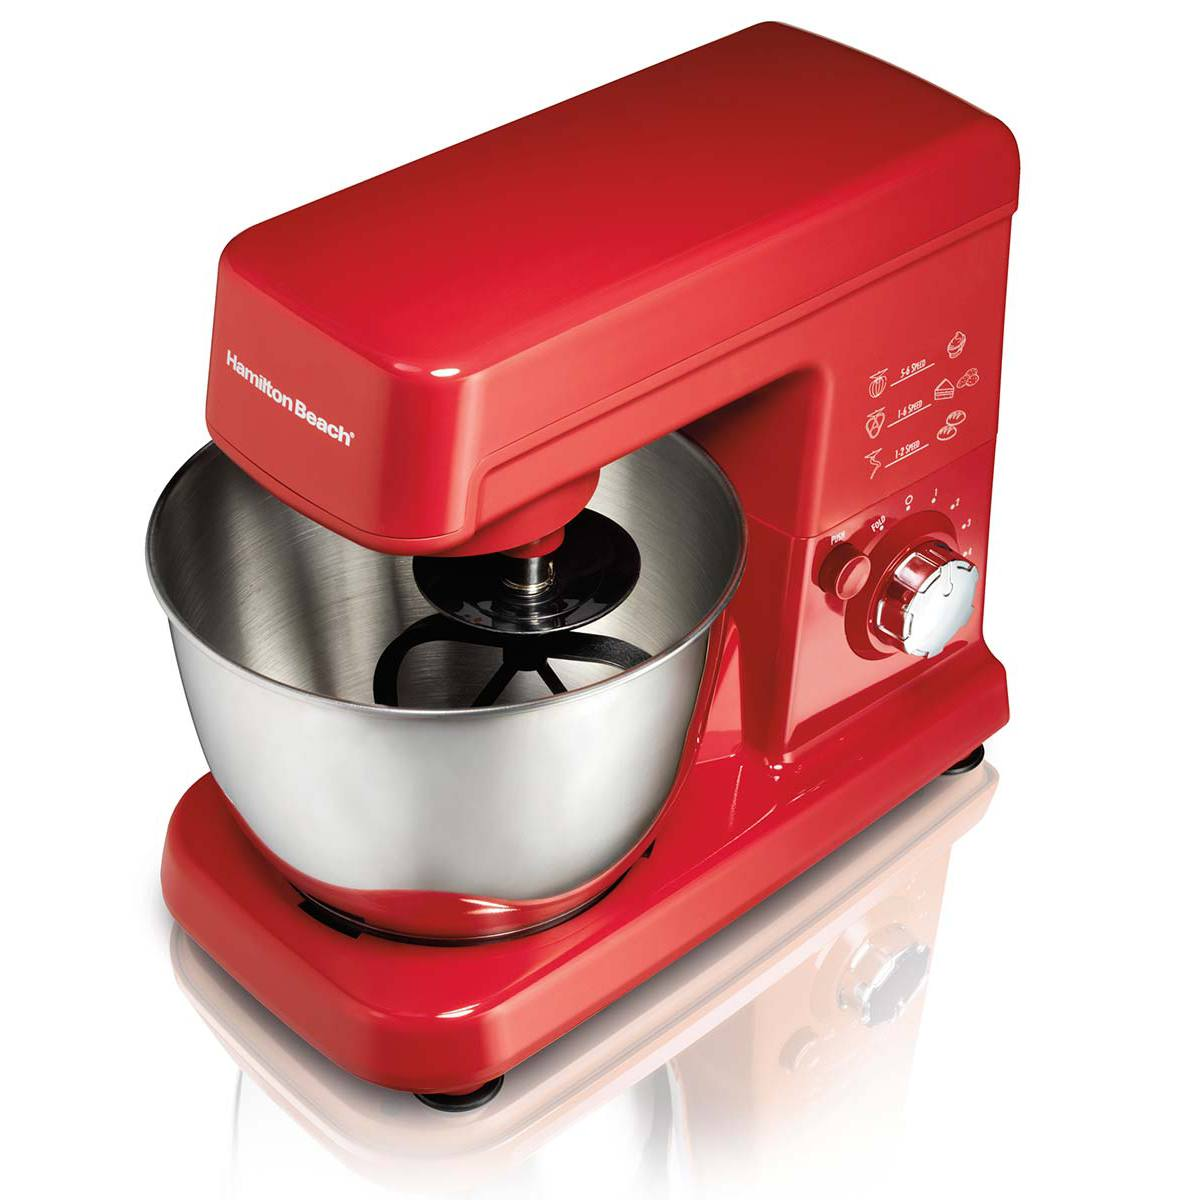 6 Speed Stand Mixer Red, 63328)